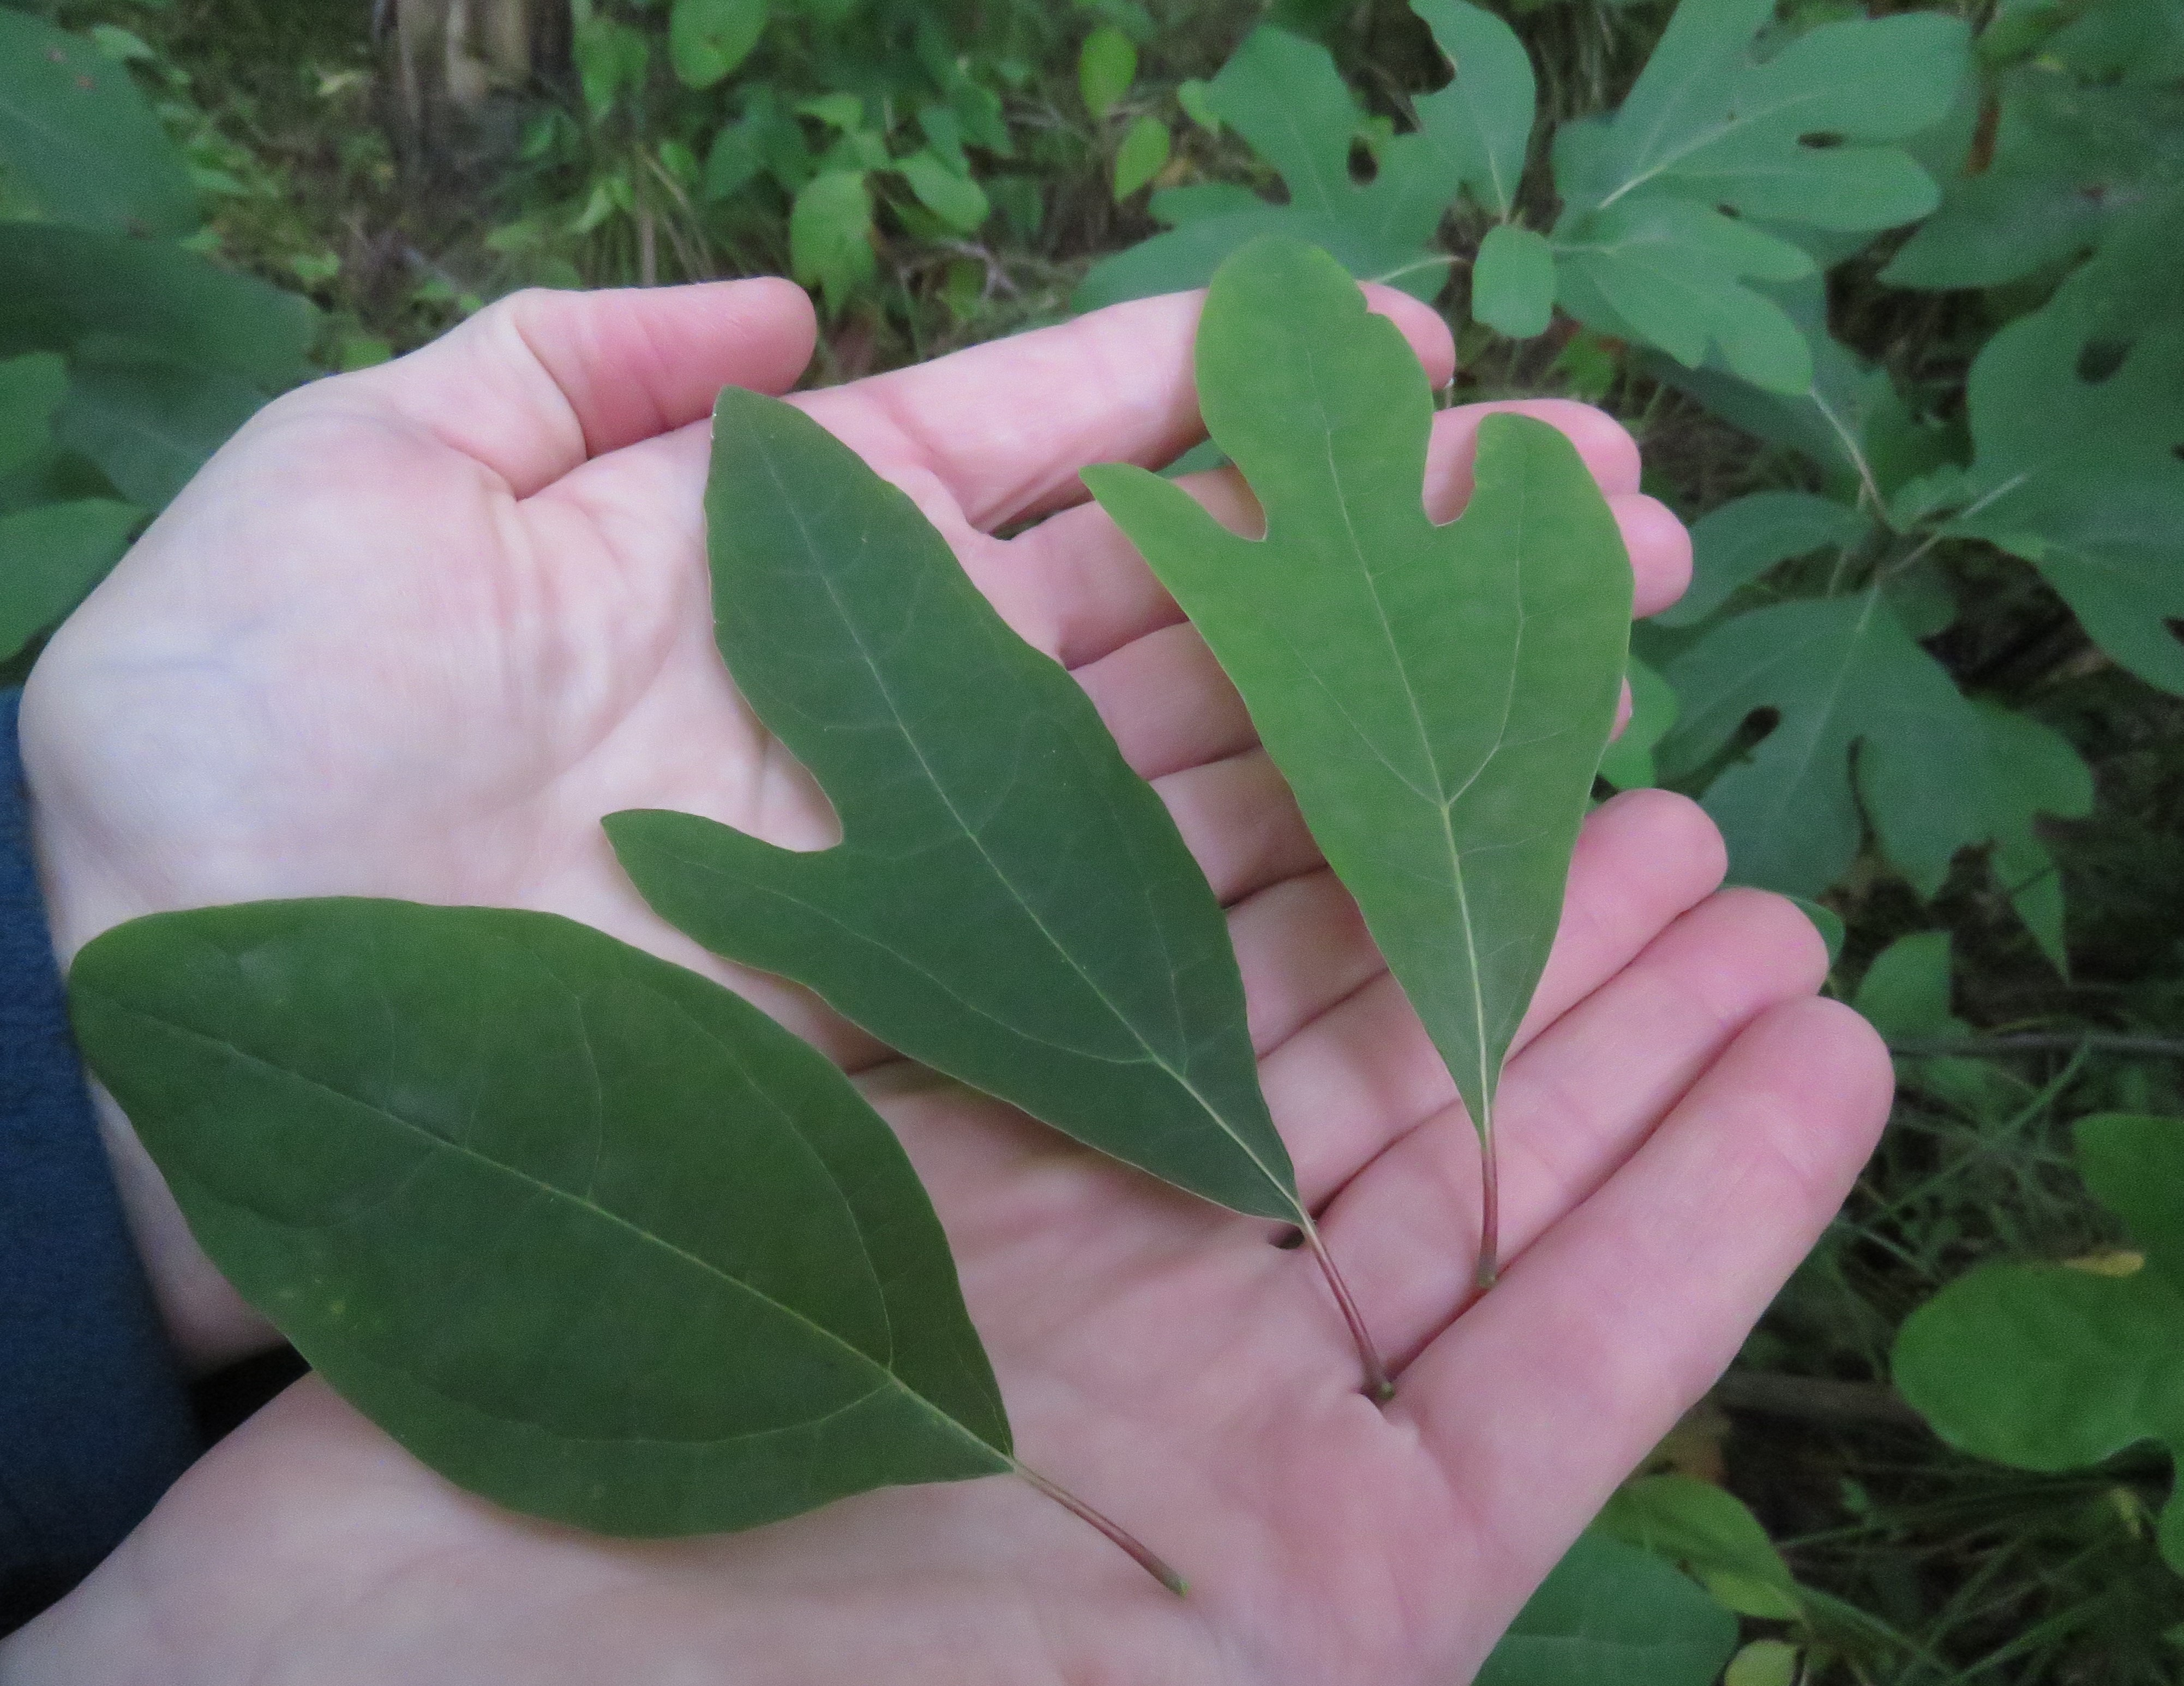 Three green sassafras leaves of varying shapes arranged in a person's open hands.